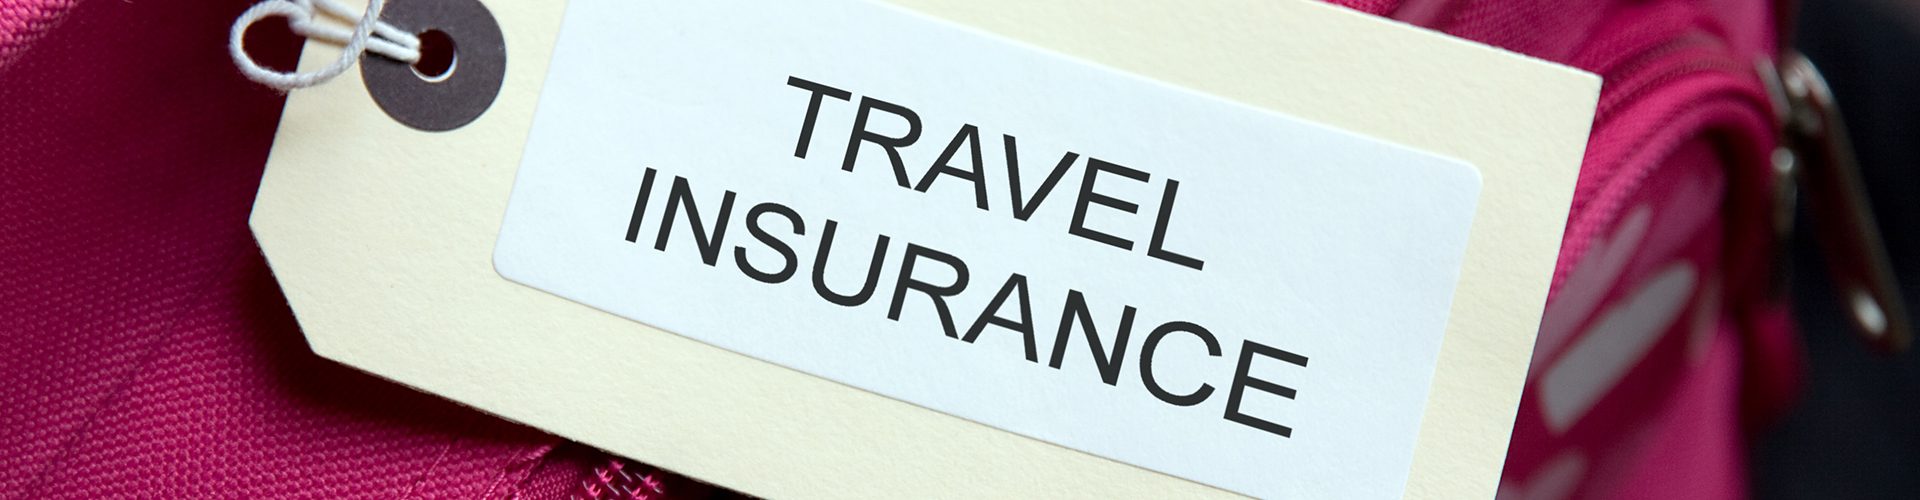 Funny Travel Insurance Stories